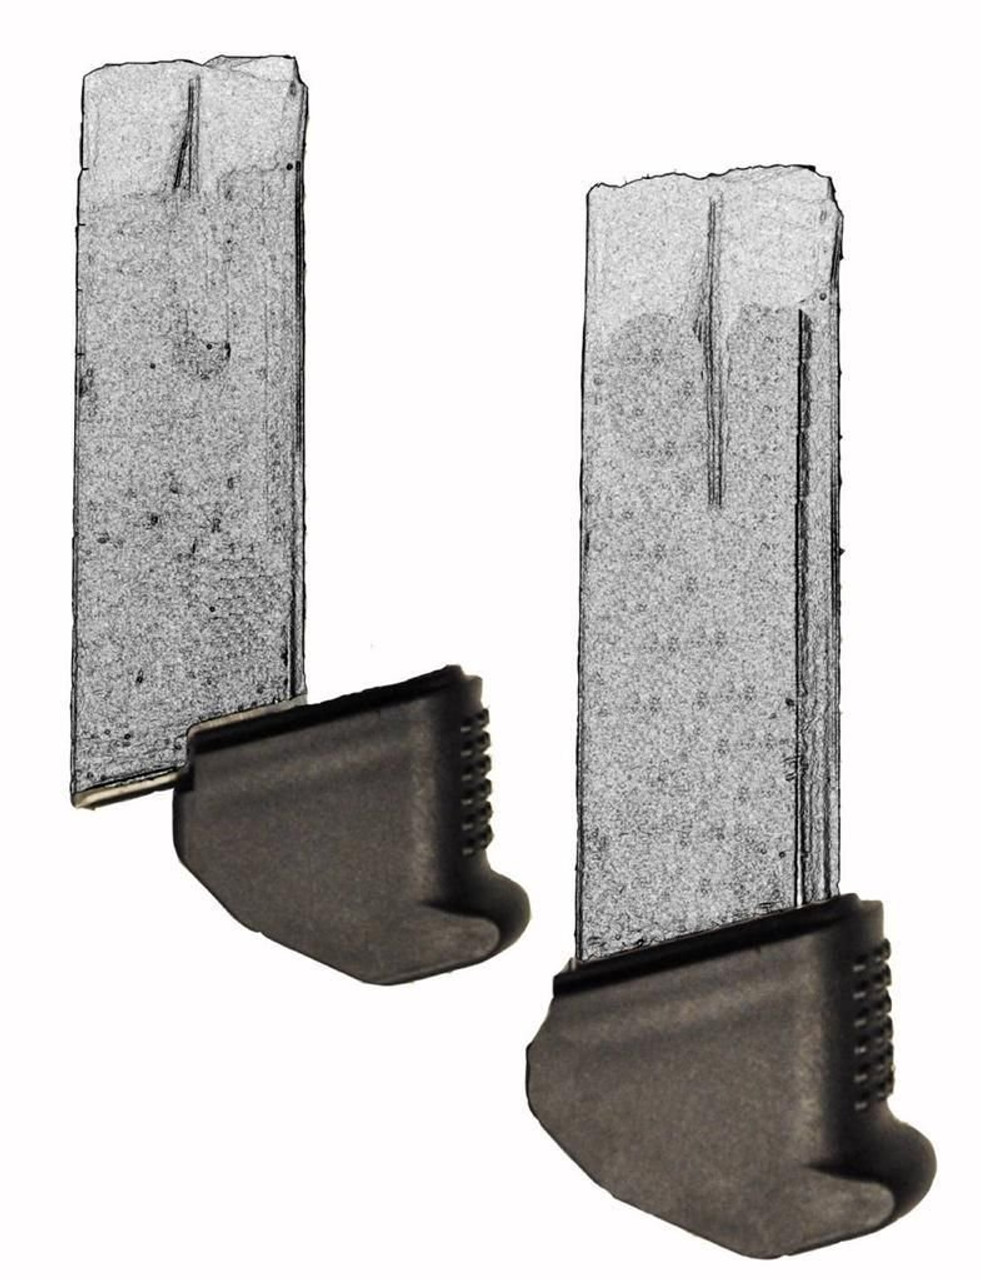 "1.5"" Grip Extension Extra Long Fits Springfield XD9 & XD40 Sub-Compact"